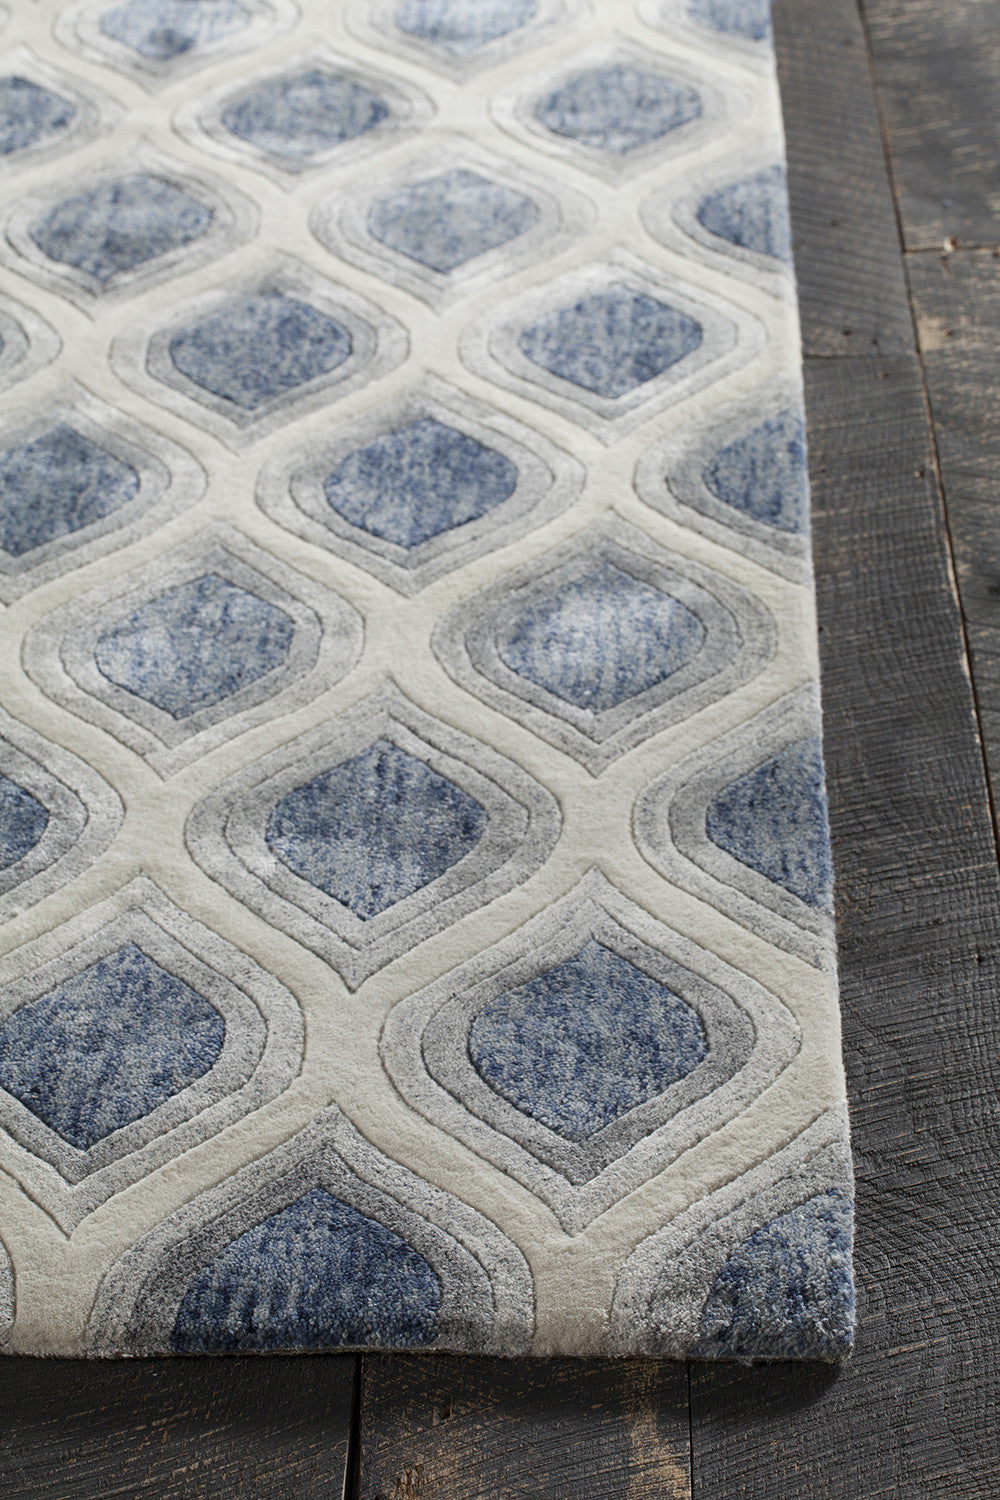 Merveilleux Clara Collection Hand Tufted Area Rug In Blue, Grey, U0026 White Design By  Chandra Rugs